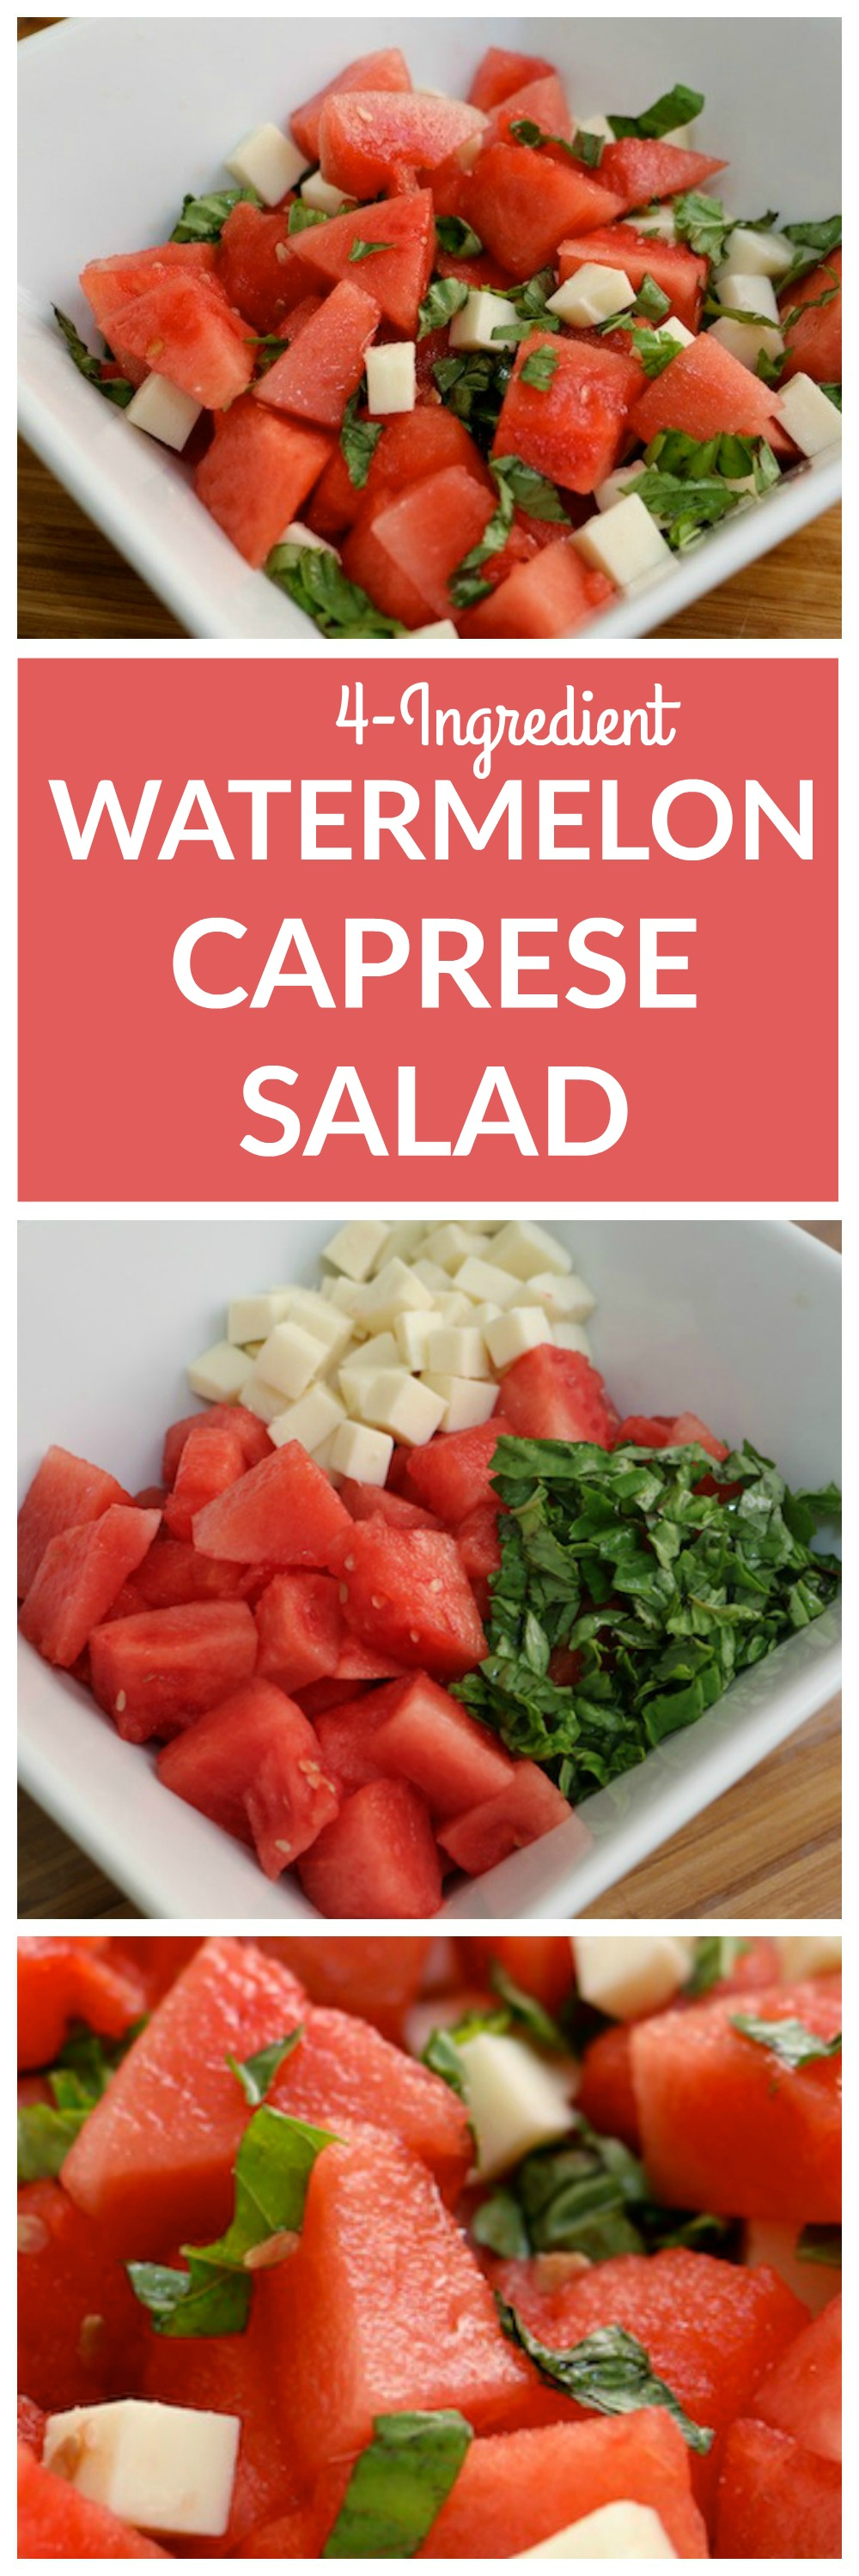 watermelon-caprese-salad